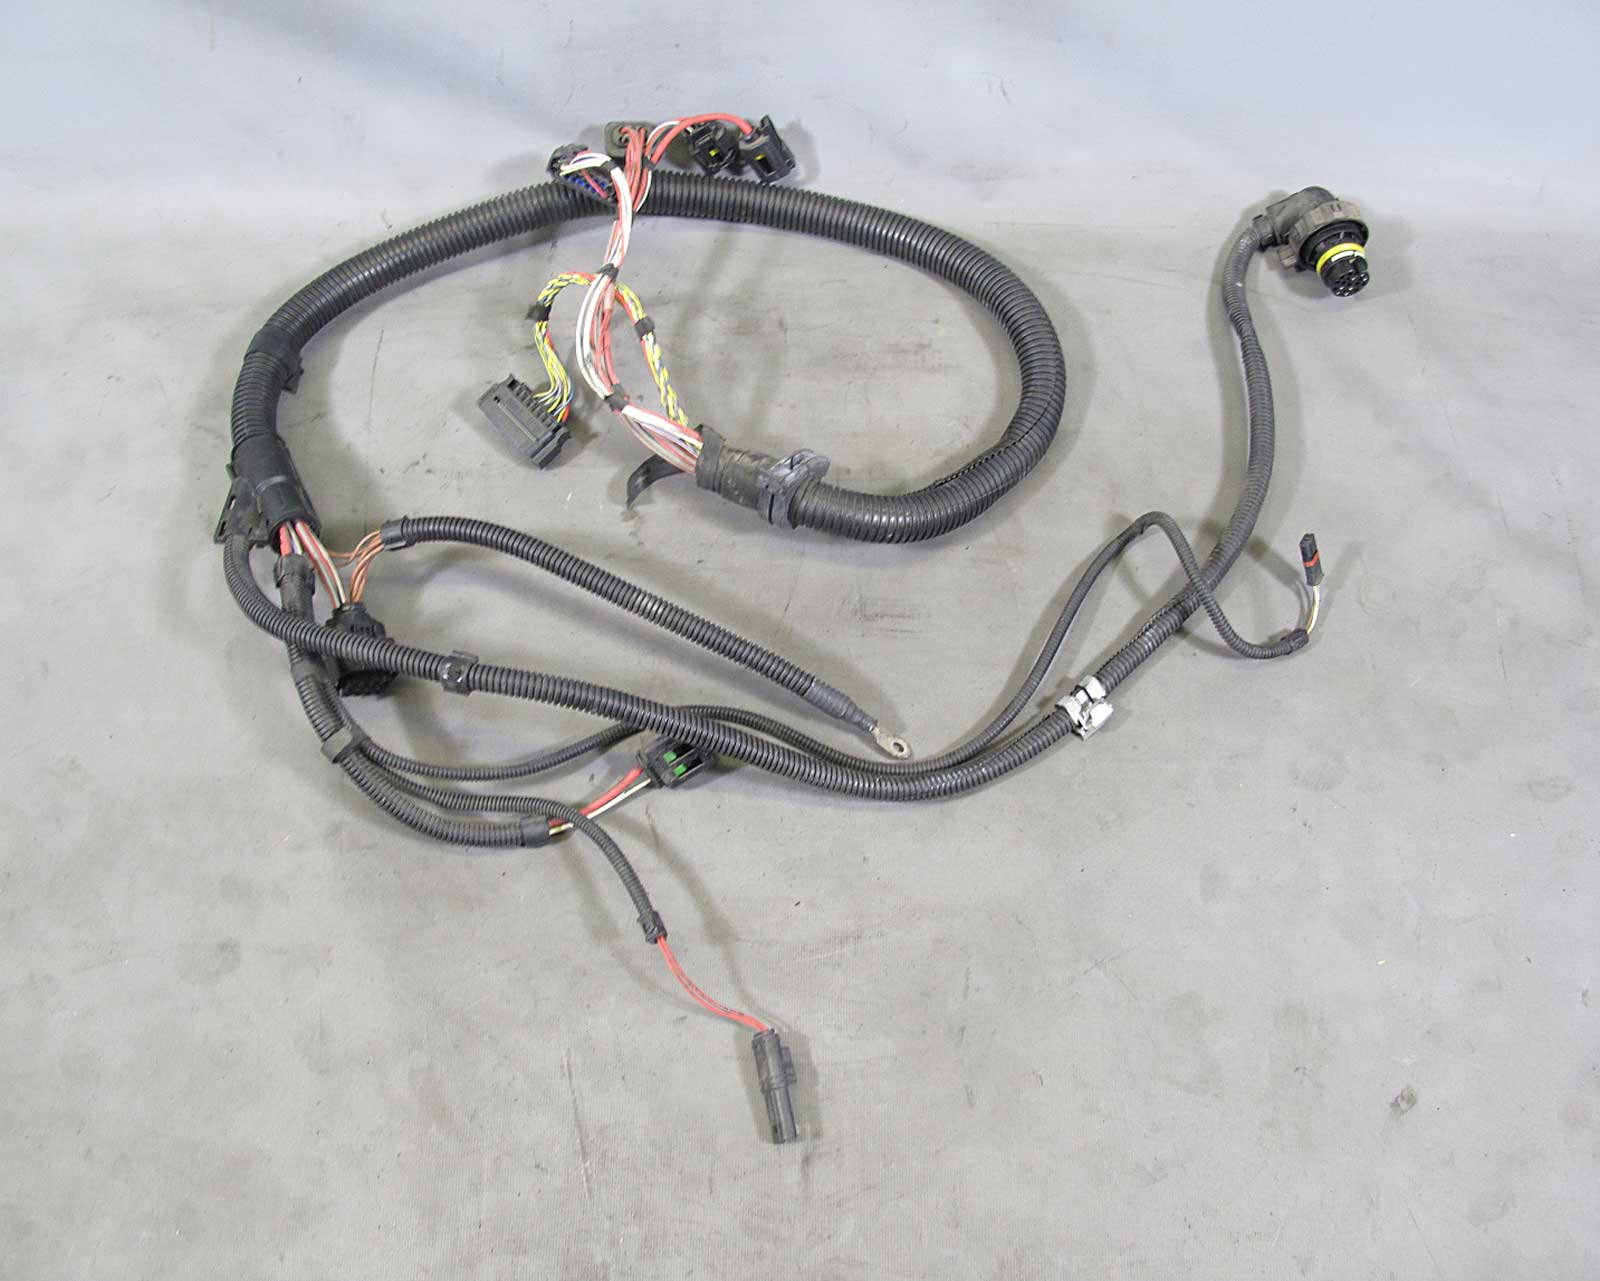 Bmw F10 535i F12 640i Automatic Transmission Wiring Harness Egs 2010 2012 Used